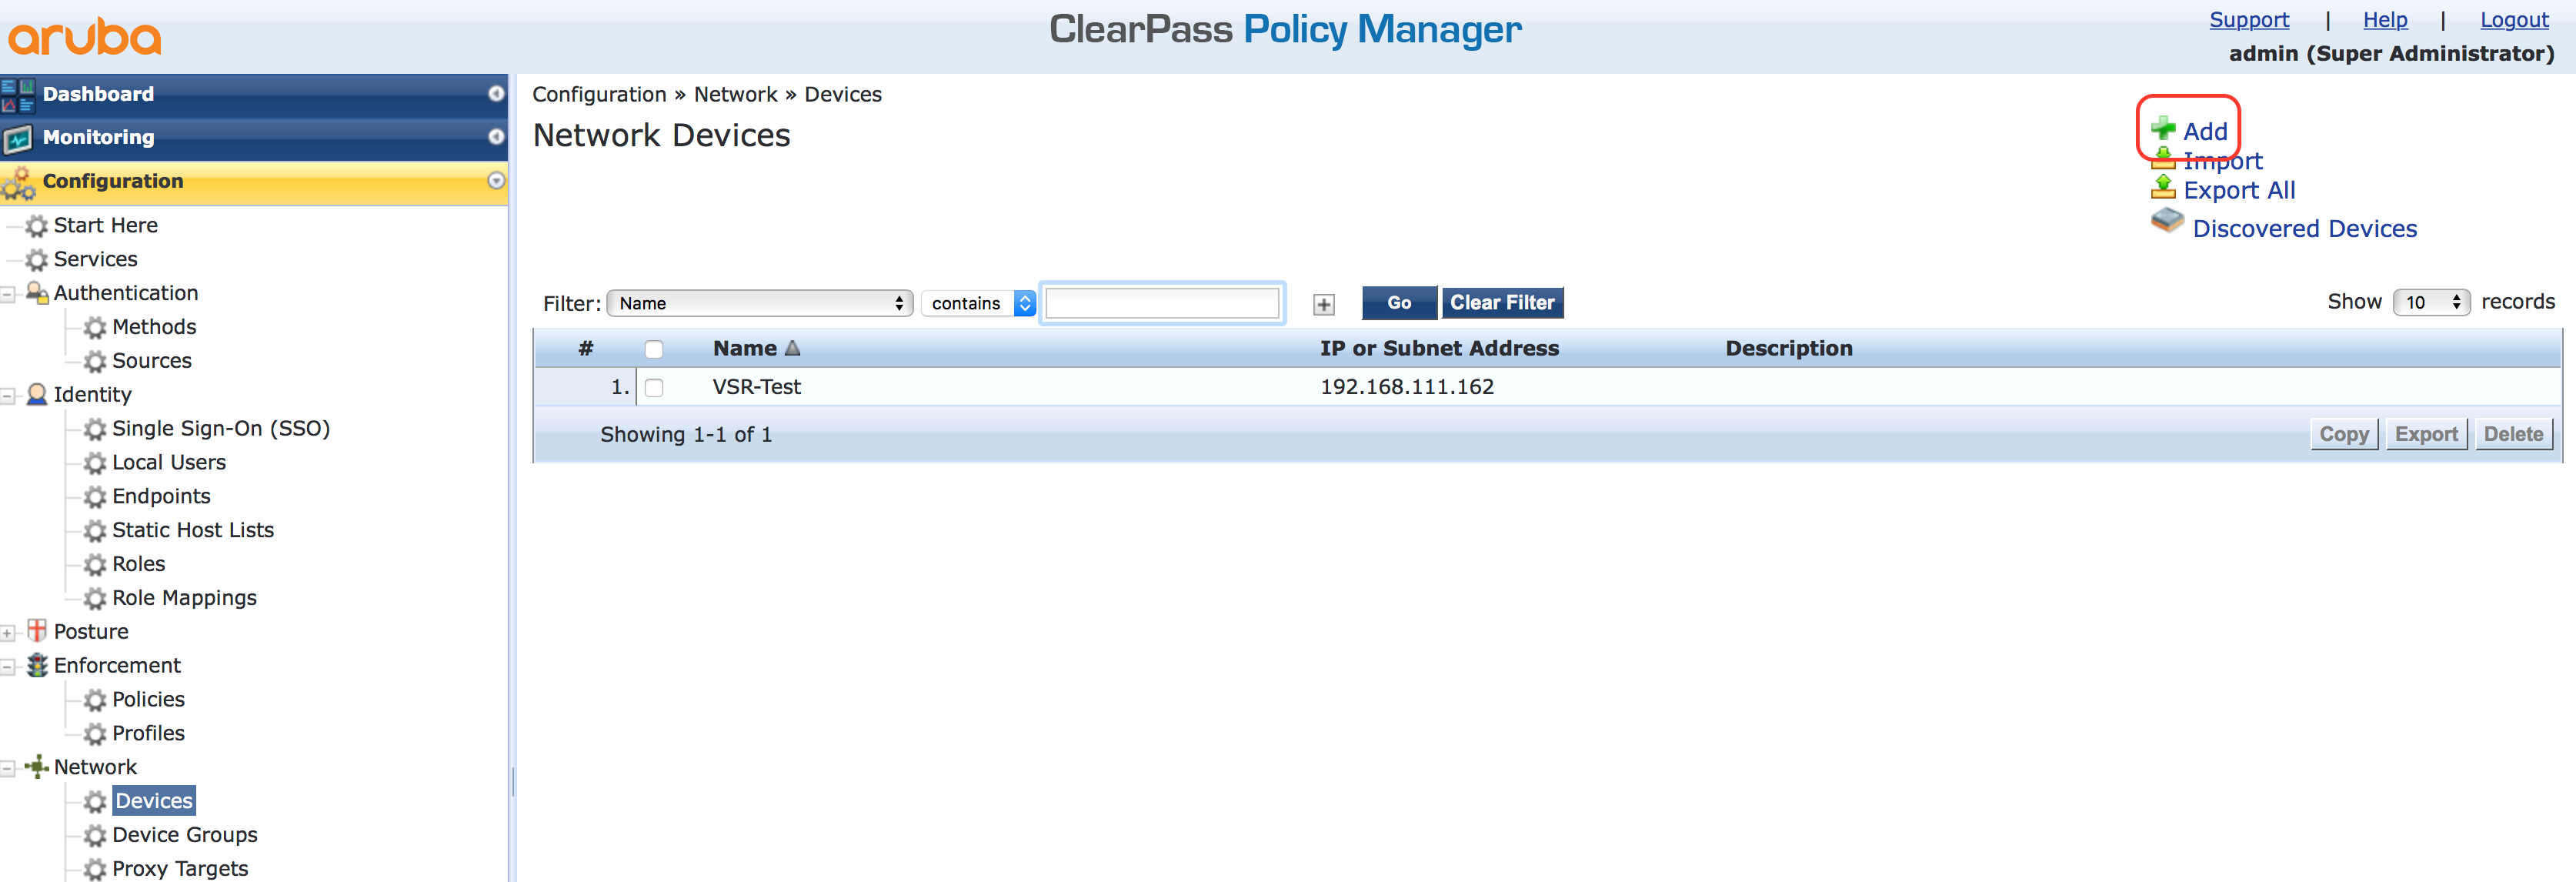 Operator Login - Add Access Device in ClearPass